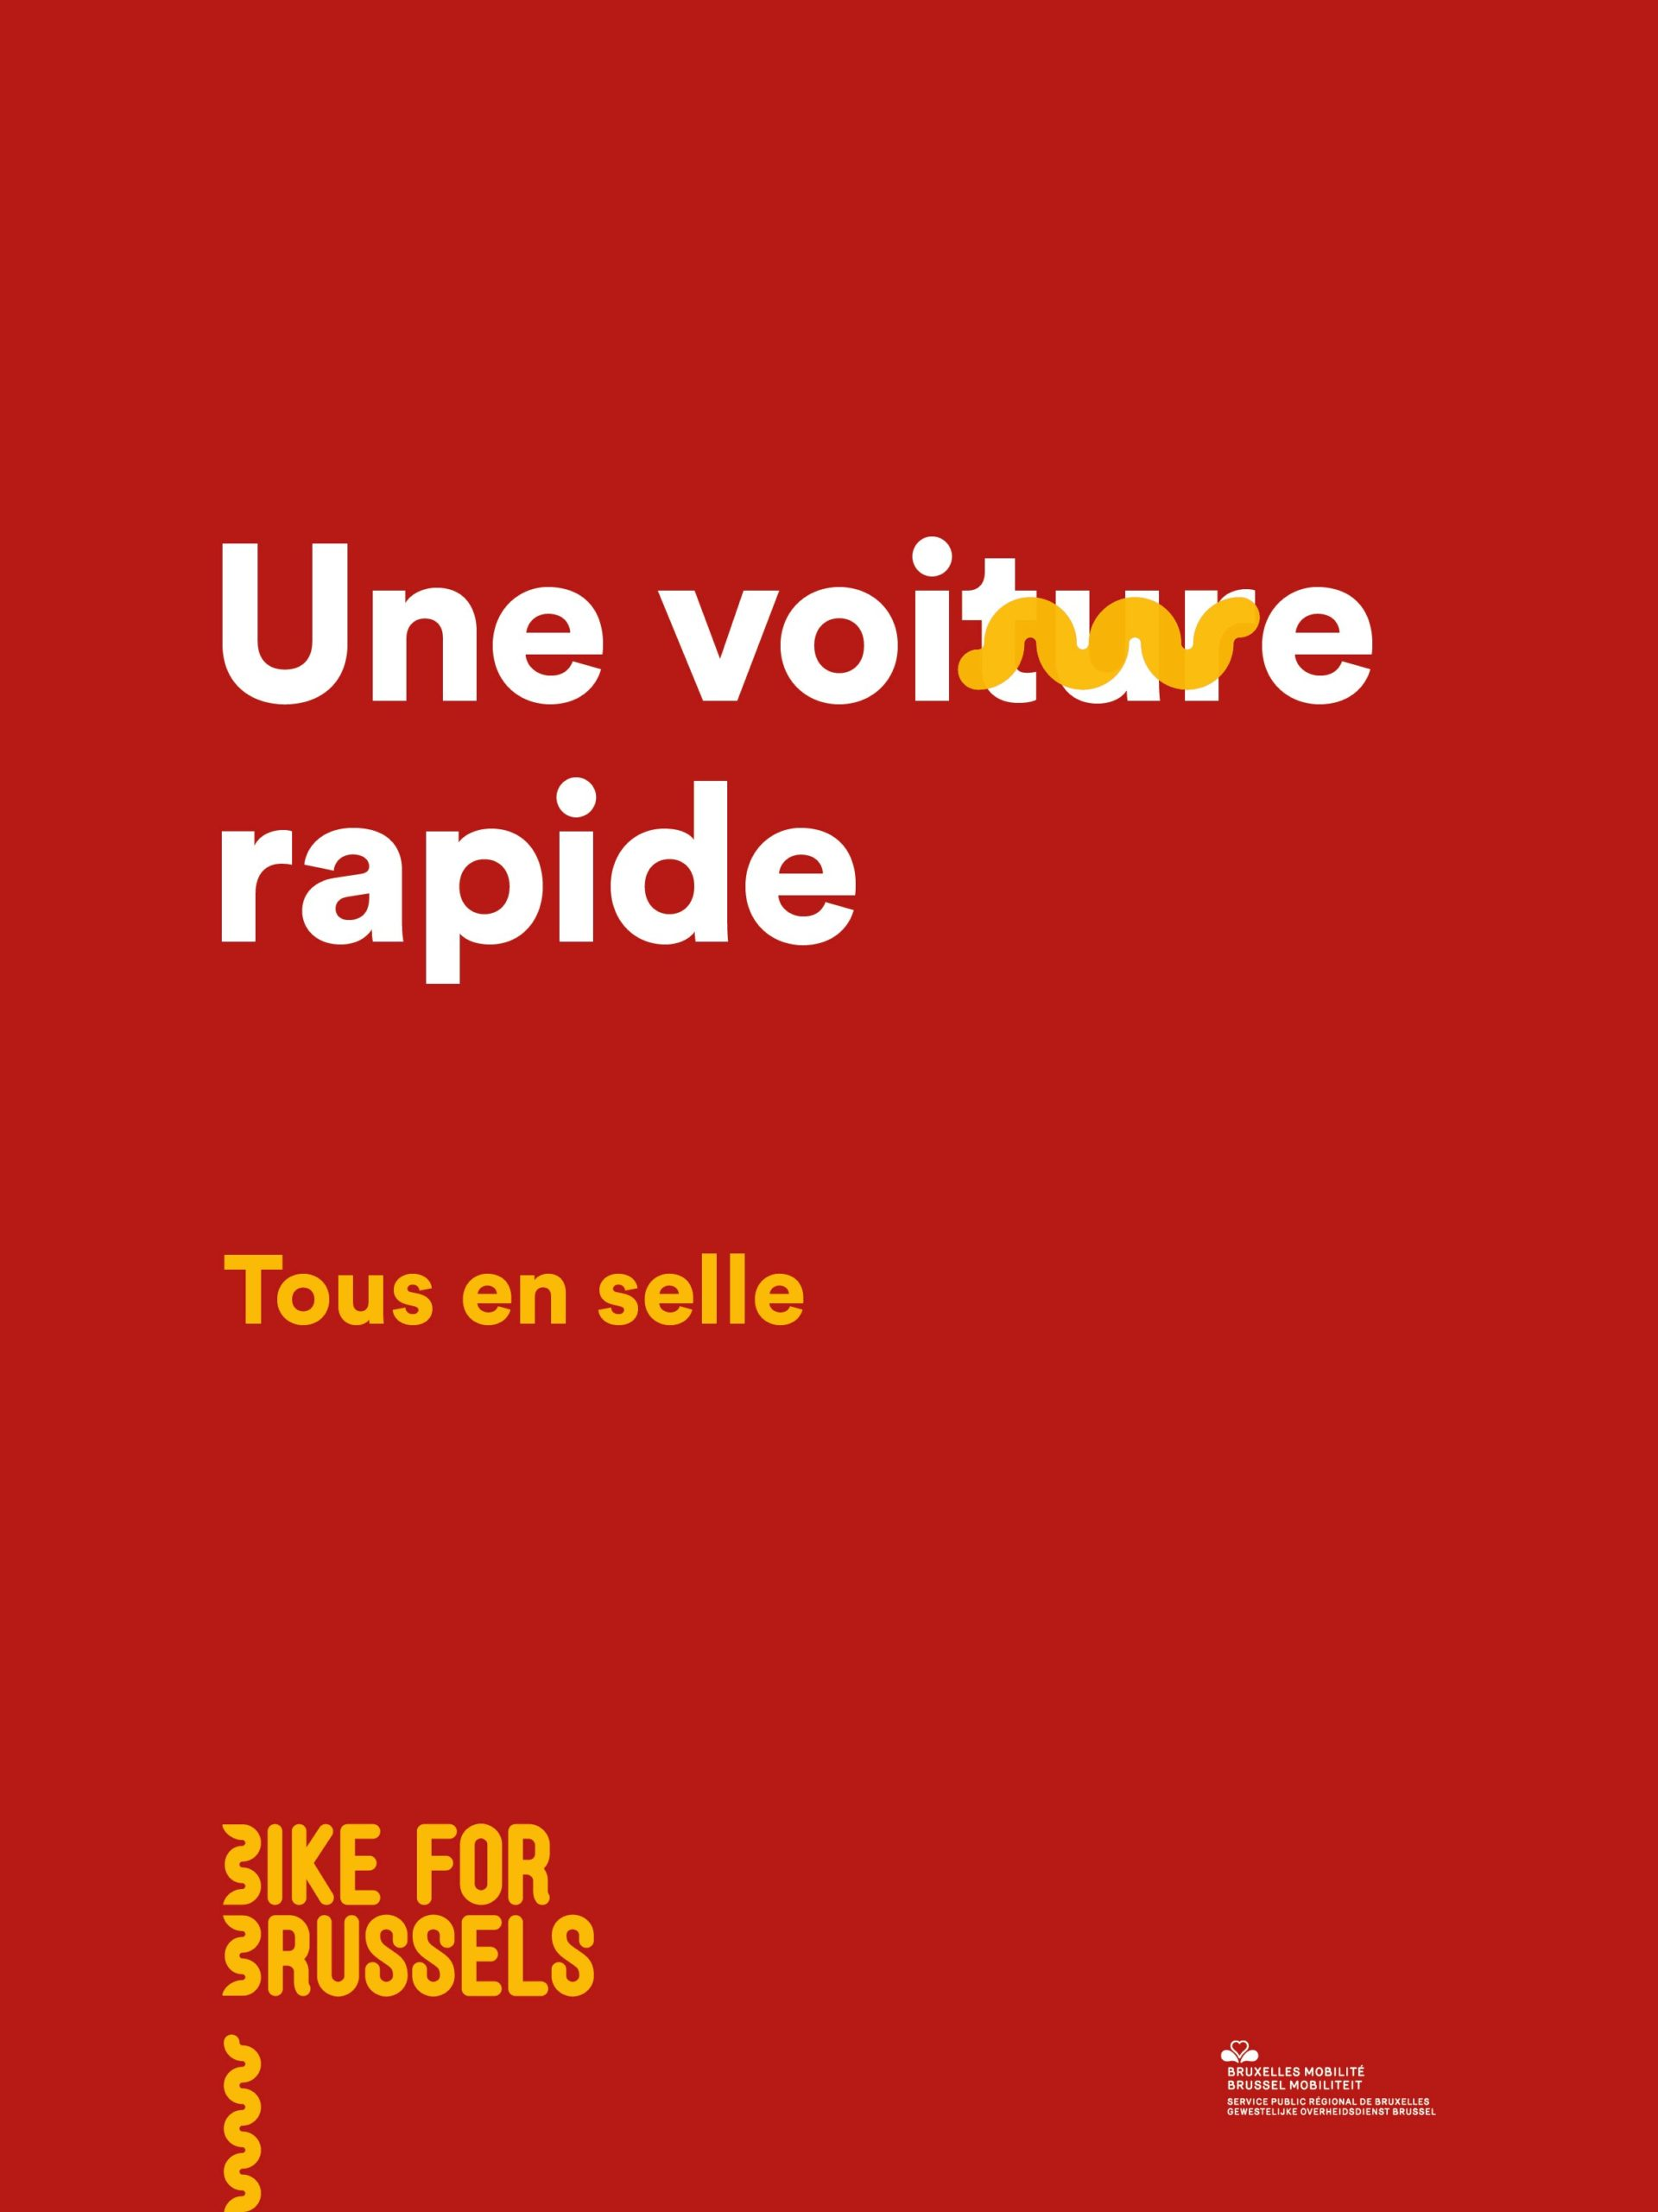 Bike For Brussels 8